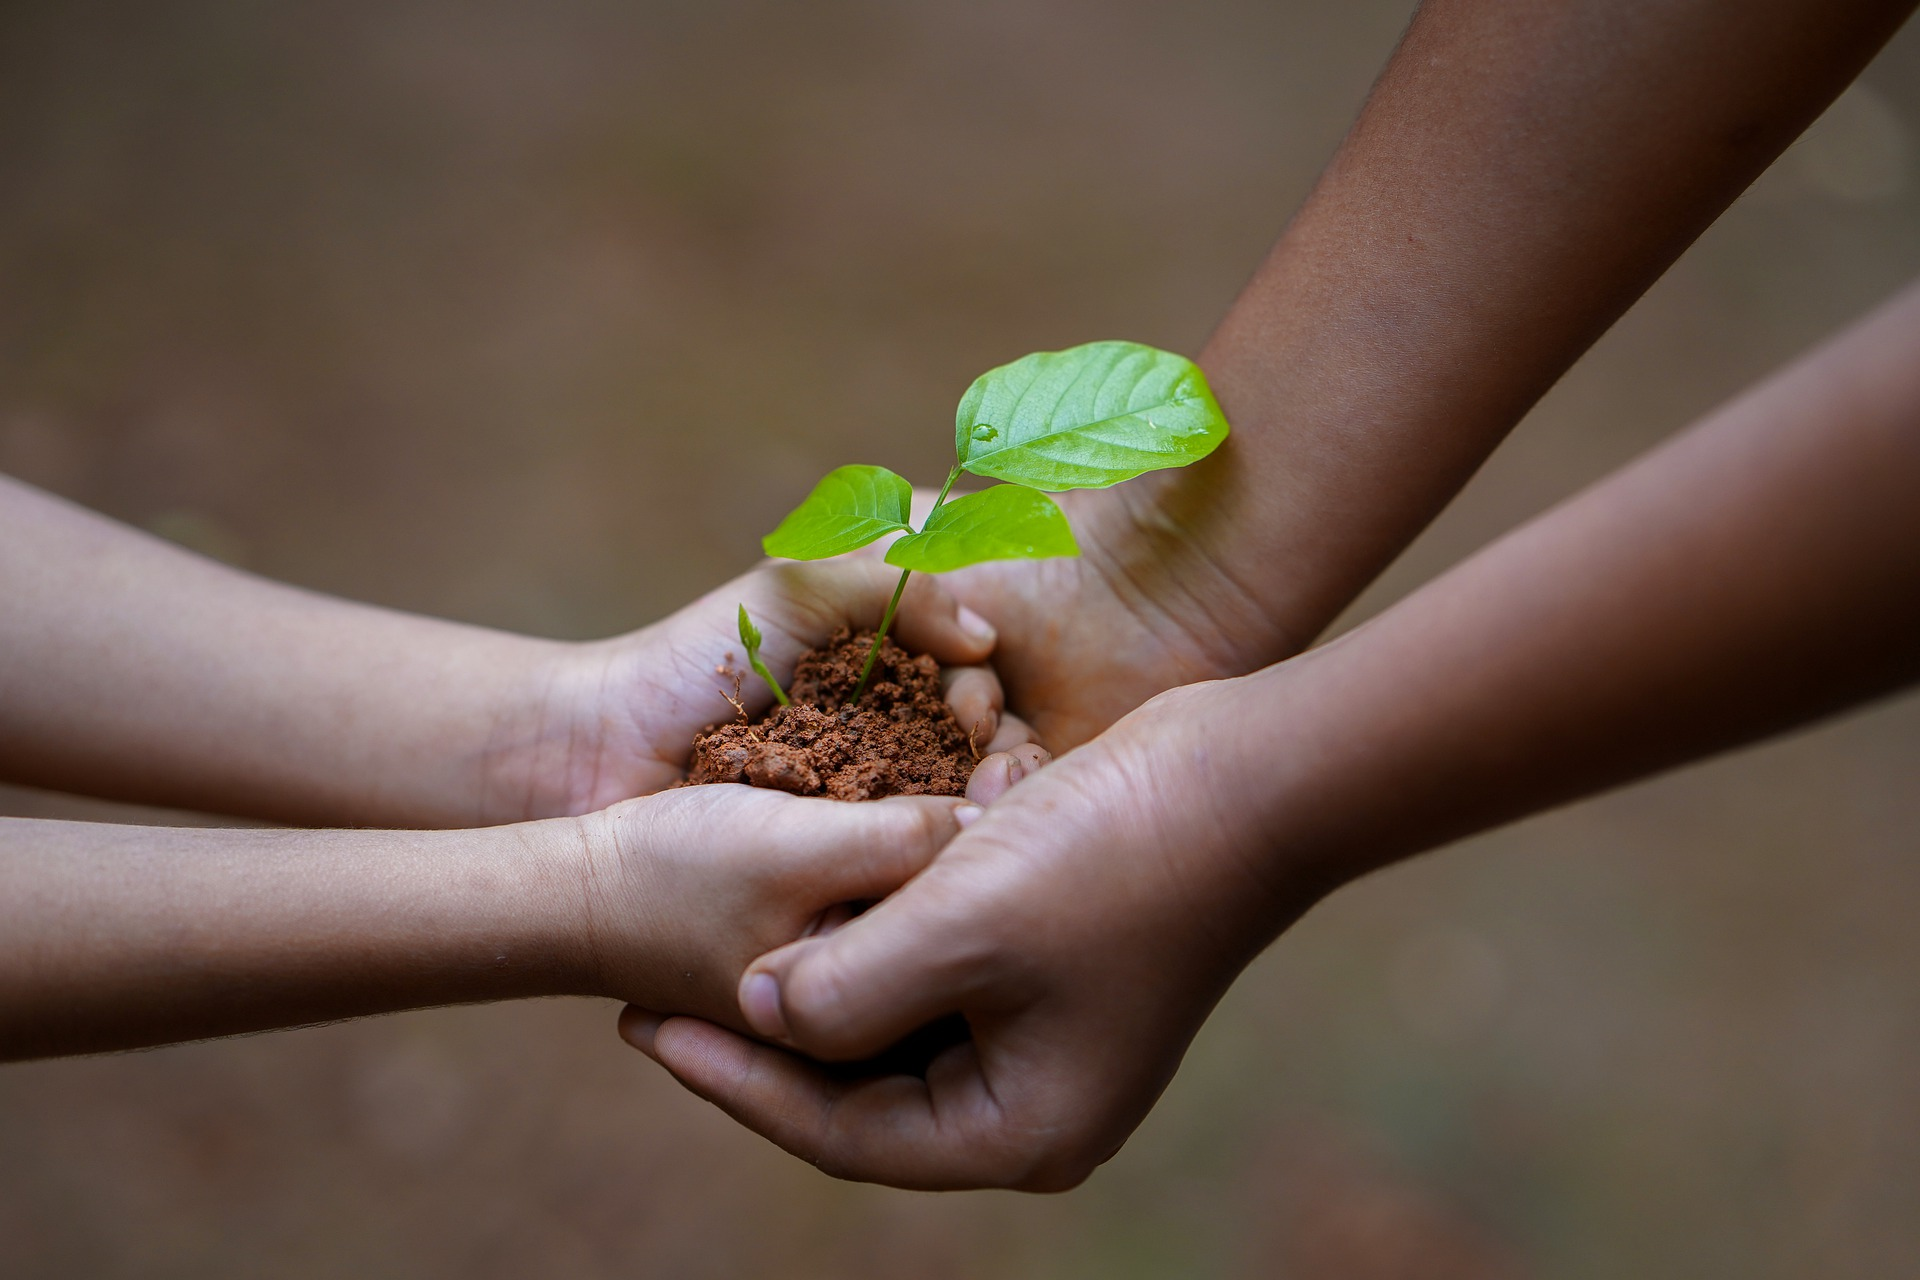 An adult and a child both holding a sapling